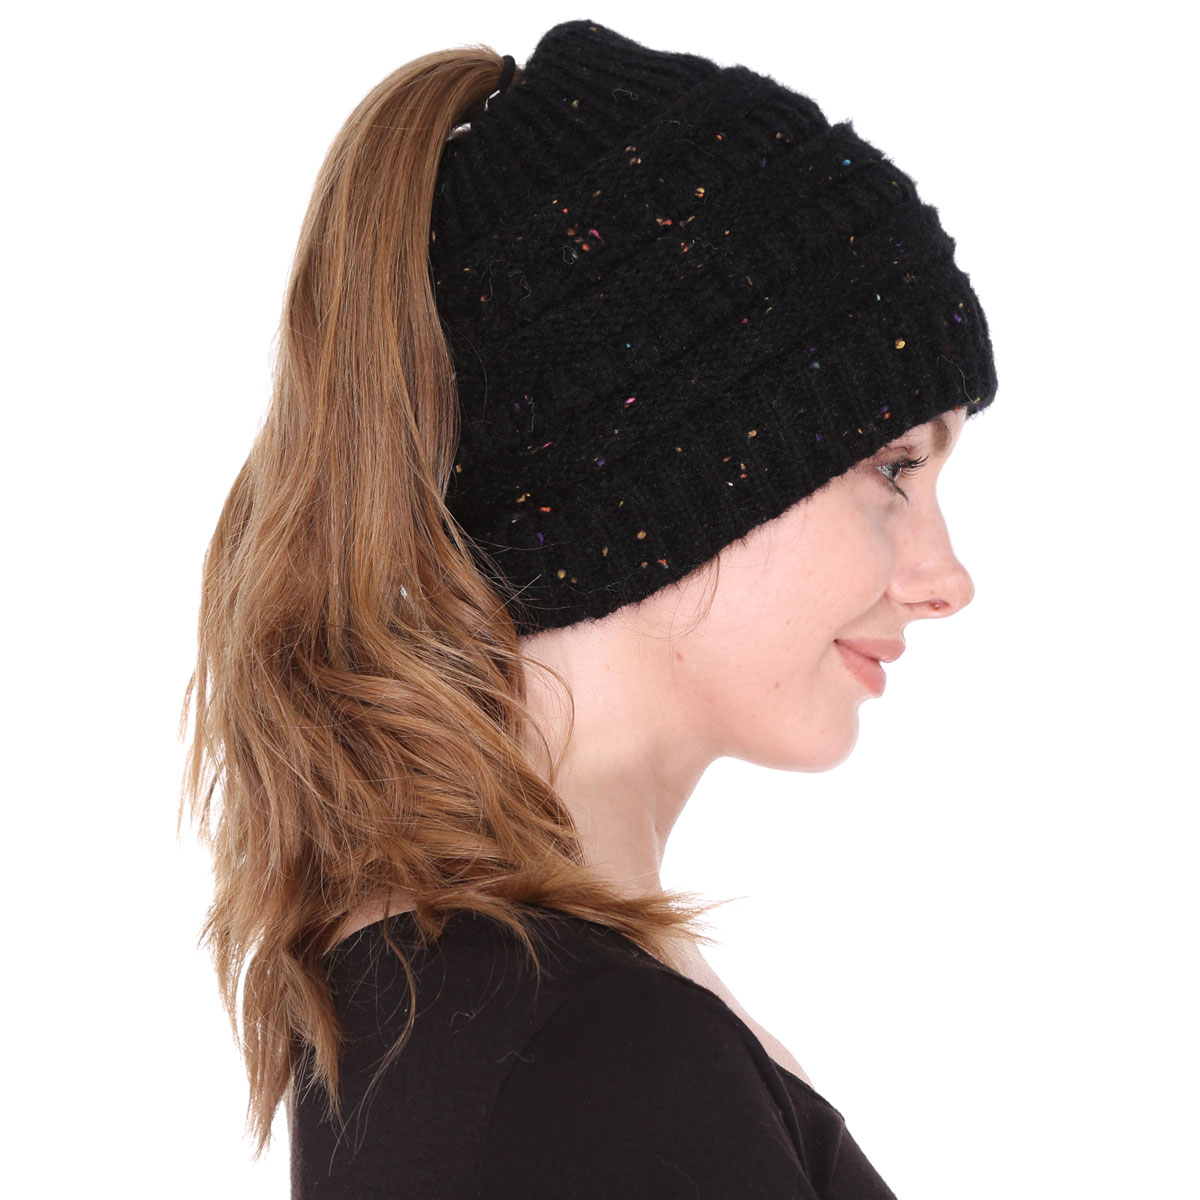 Knit Beanie - Ponytail  Messy Bun Style  - JH222 Black Ponytail Knitted Cap